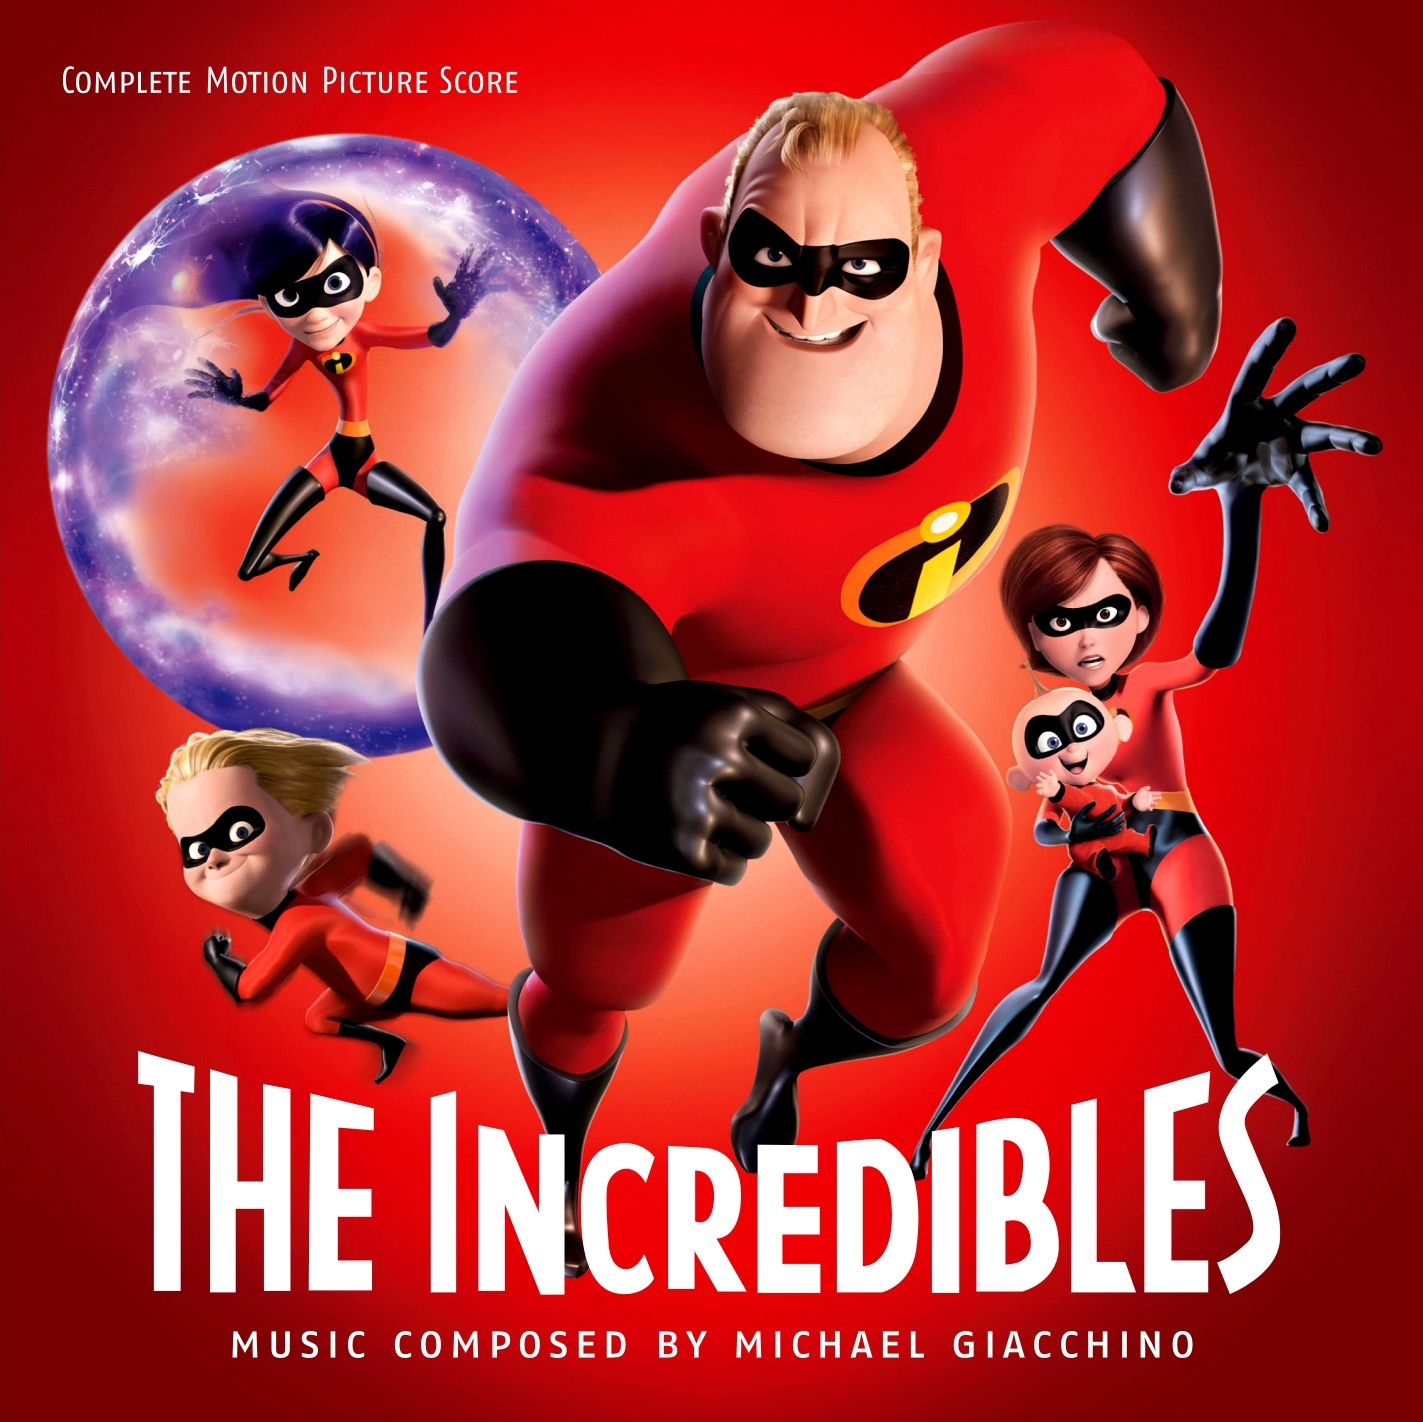 theincrediblesfront